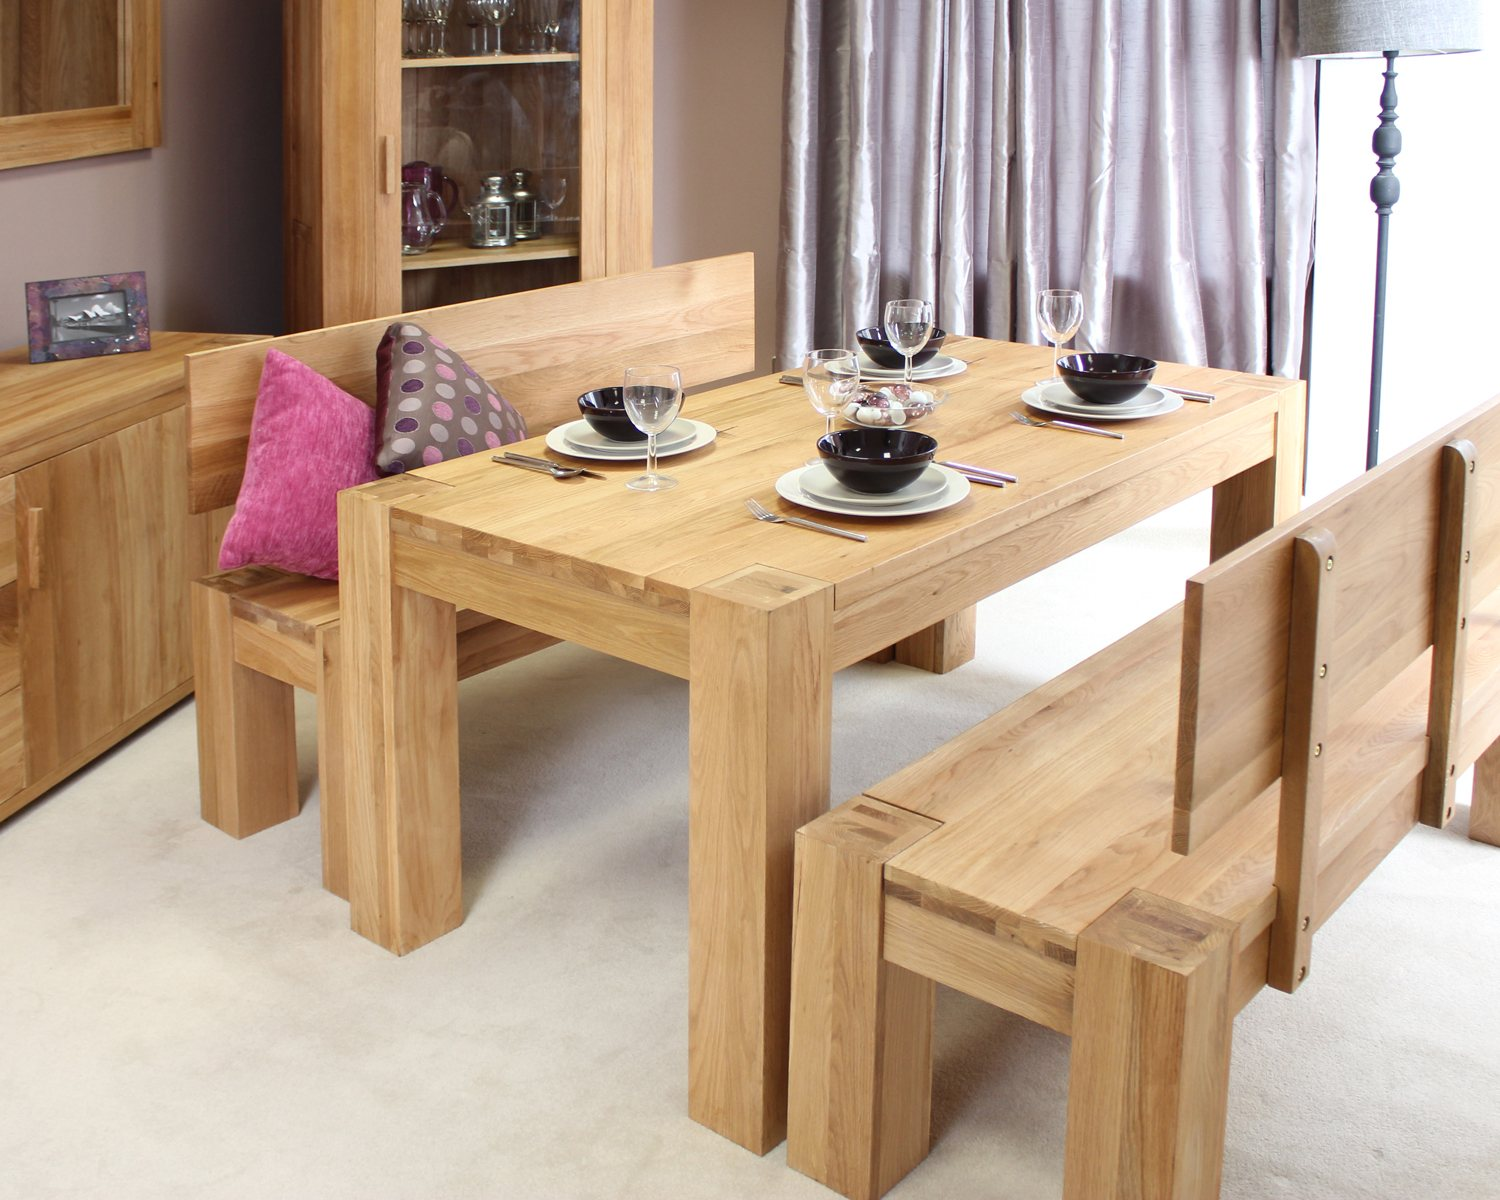 Palma Solid Chunky Oak Dining Room Furniture Dining Table And Benches Set Ebay